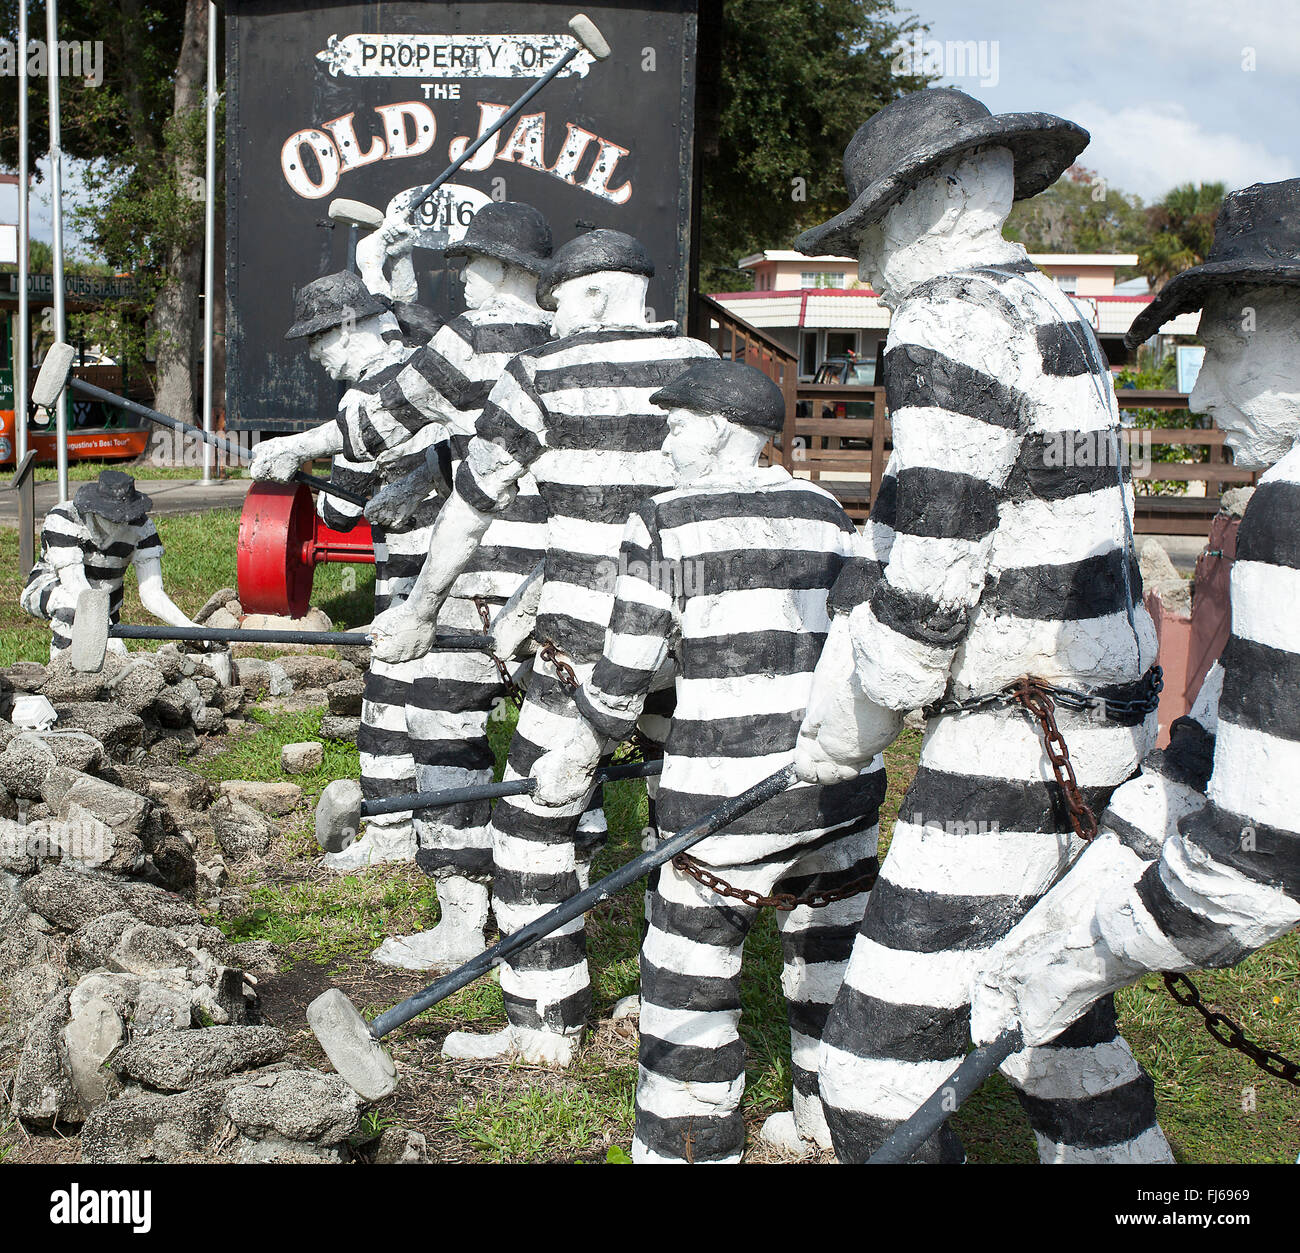 Sculptures of Chain Gang Convicts near the Old Jail Museum Complex in Historic St. Augustine Florida - Stock Image